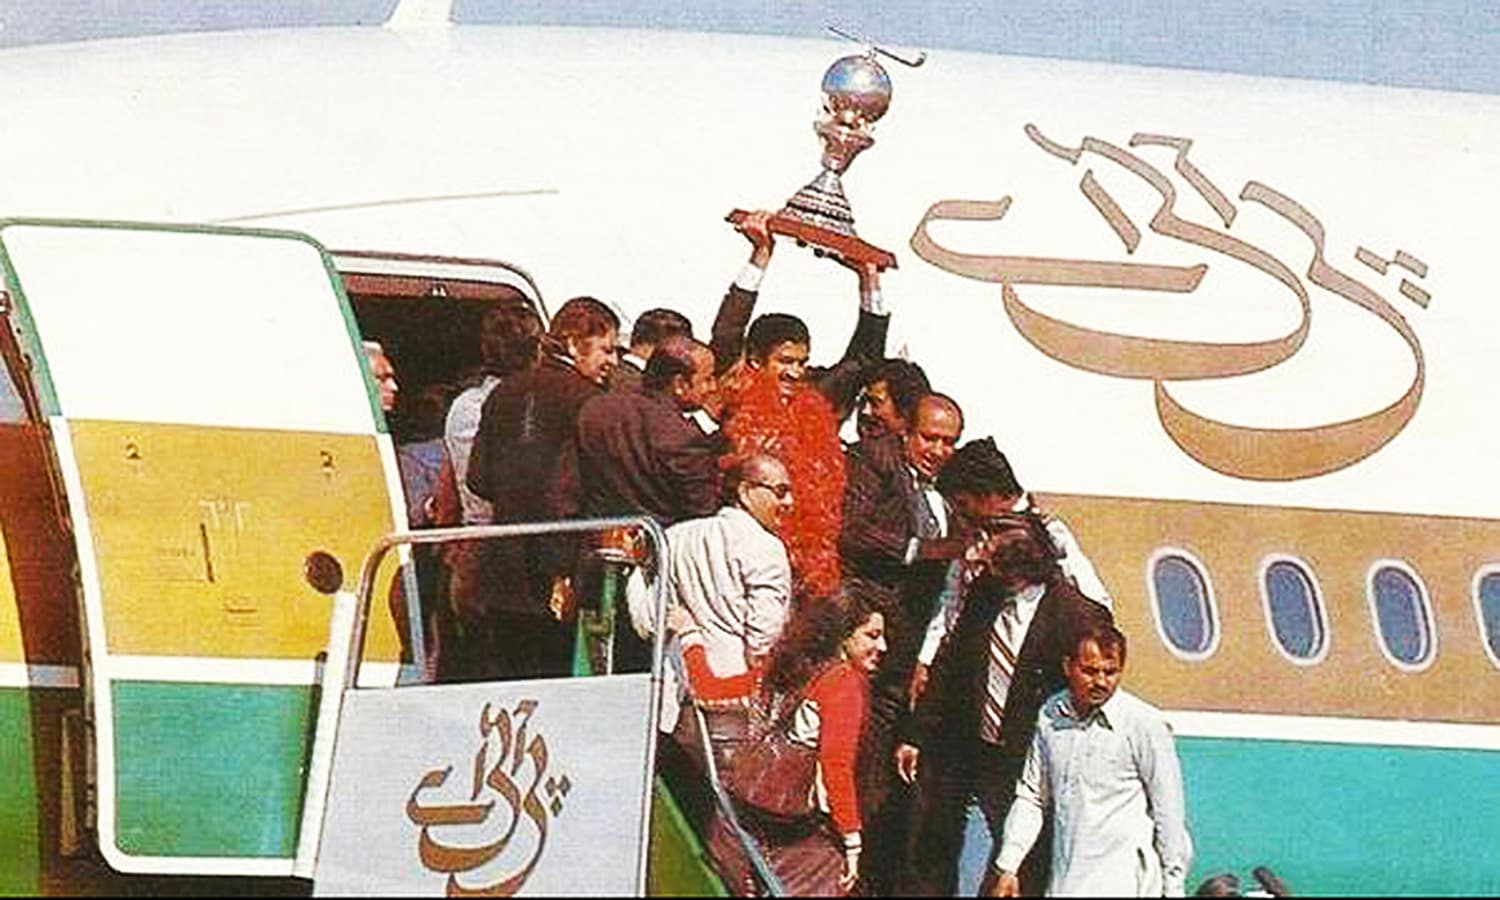 1982: The Pakistan hockey team brings home its third (and second consecutive) world cup. -- Photo: Akhbar-e-Watan